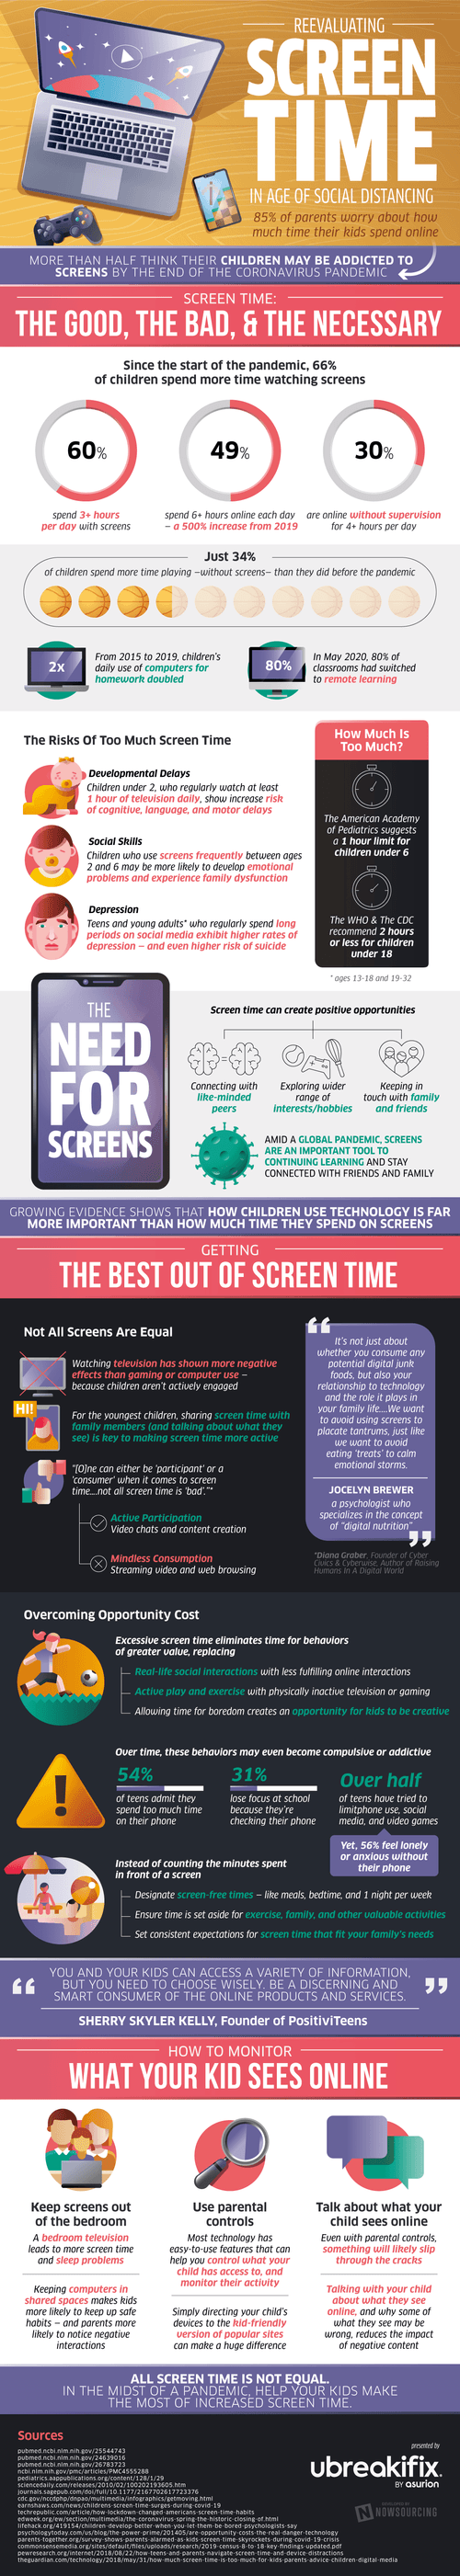 Is Screen Time Really That Bad? via Brian Wallace